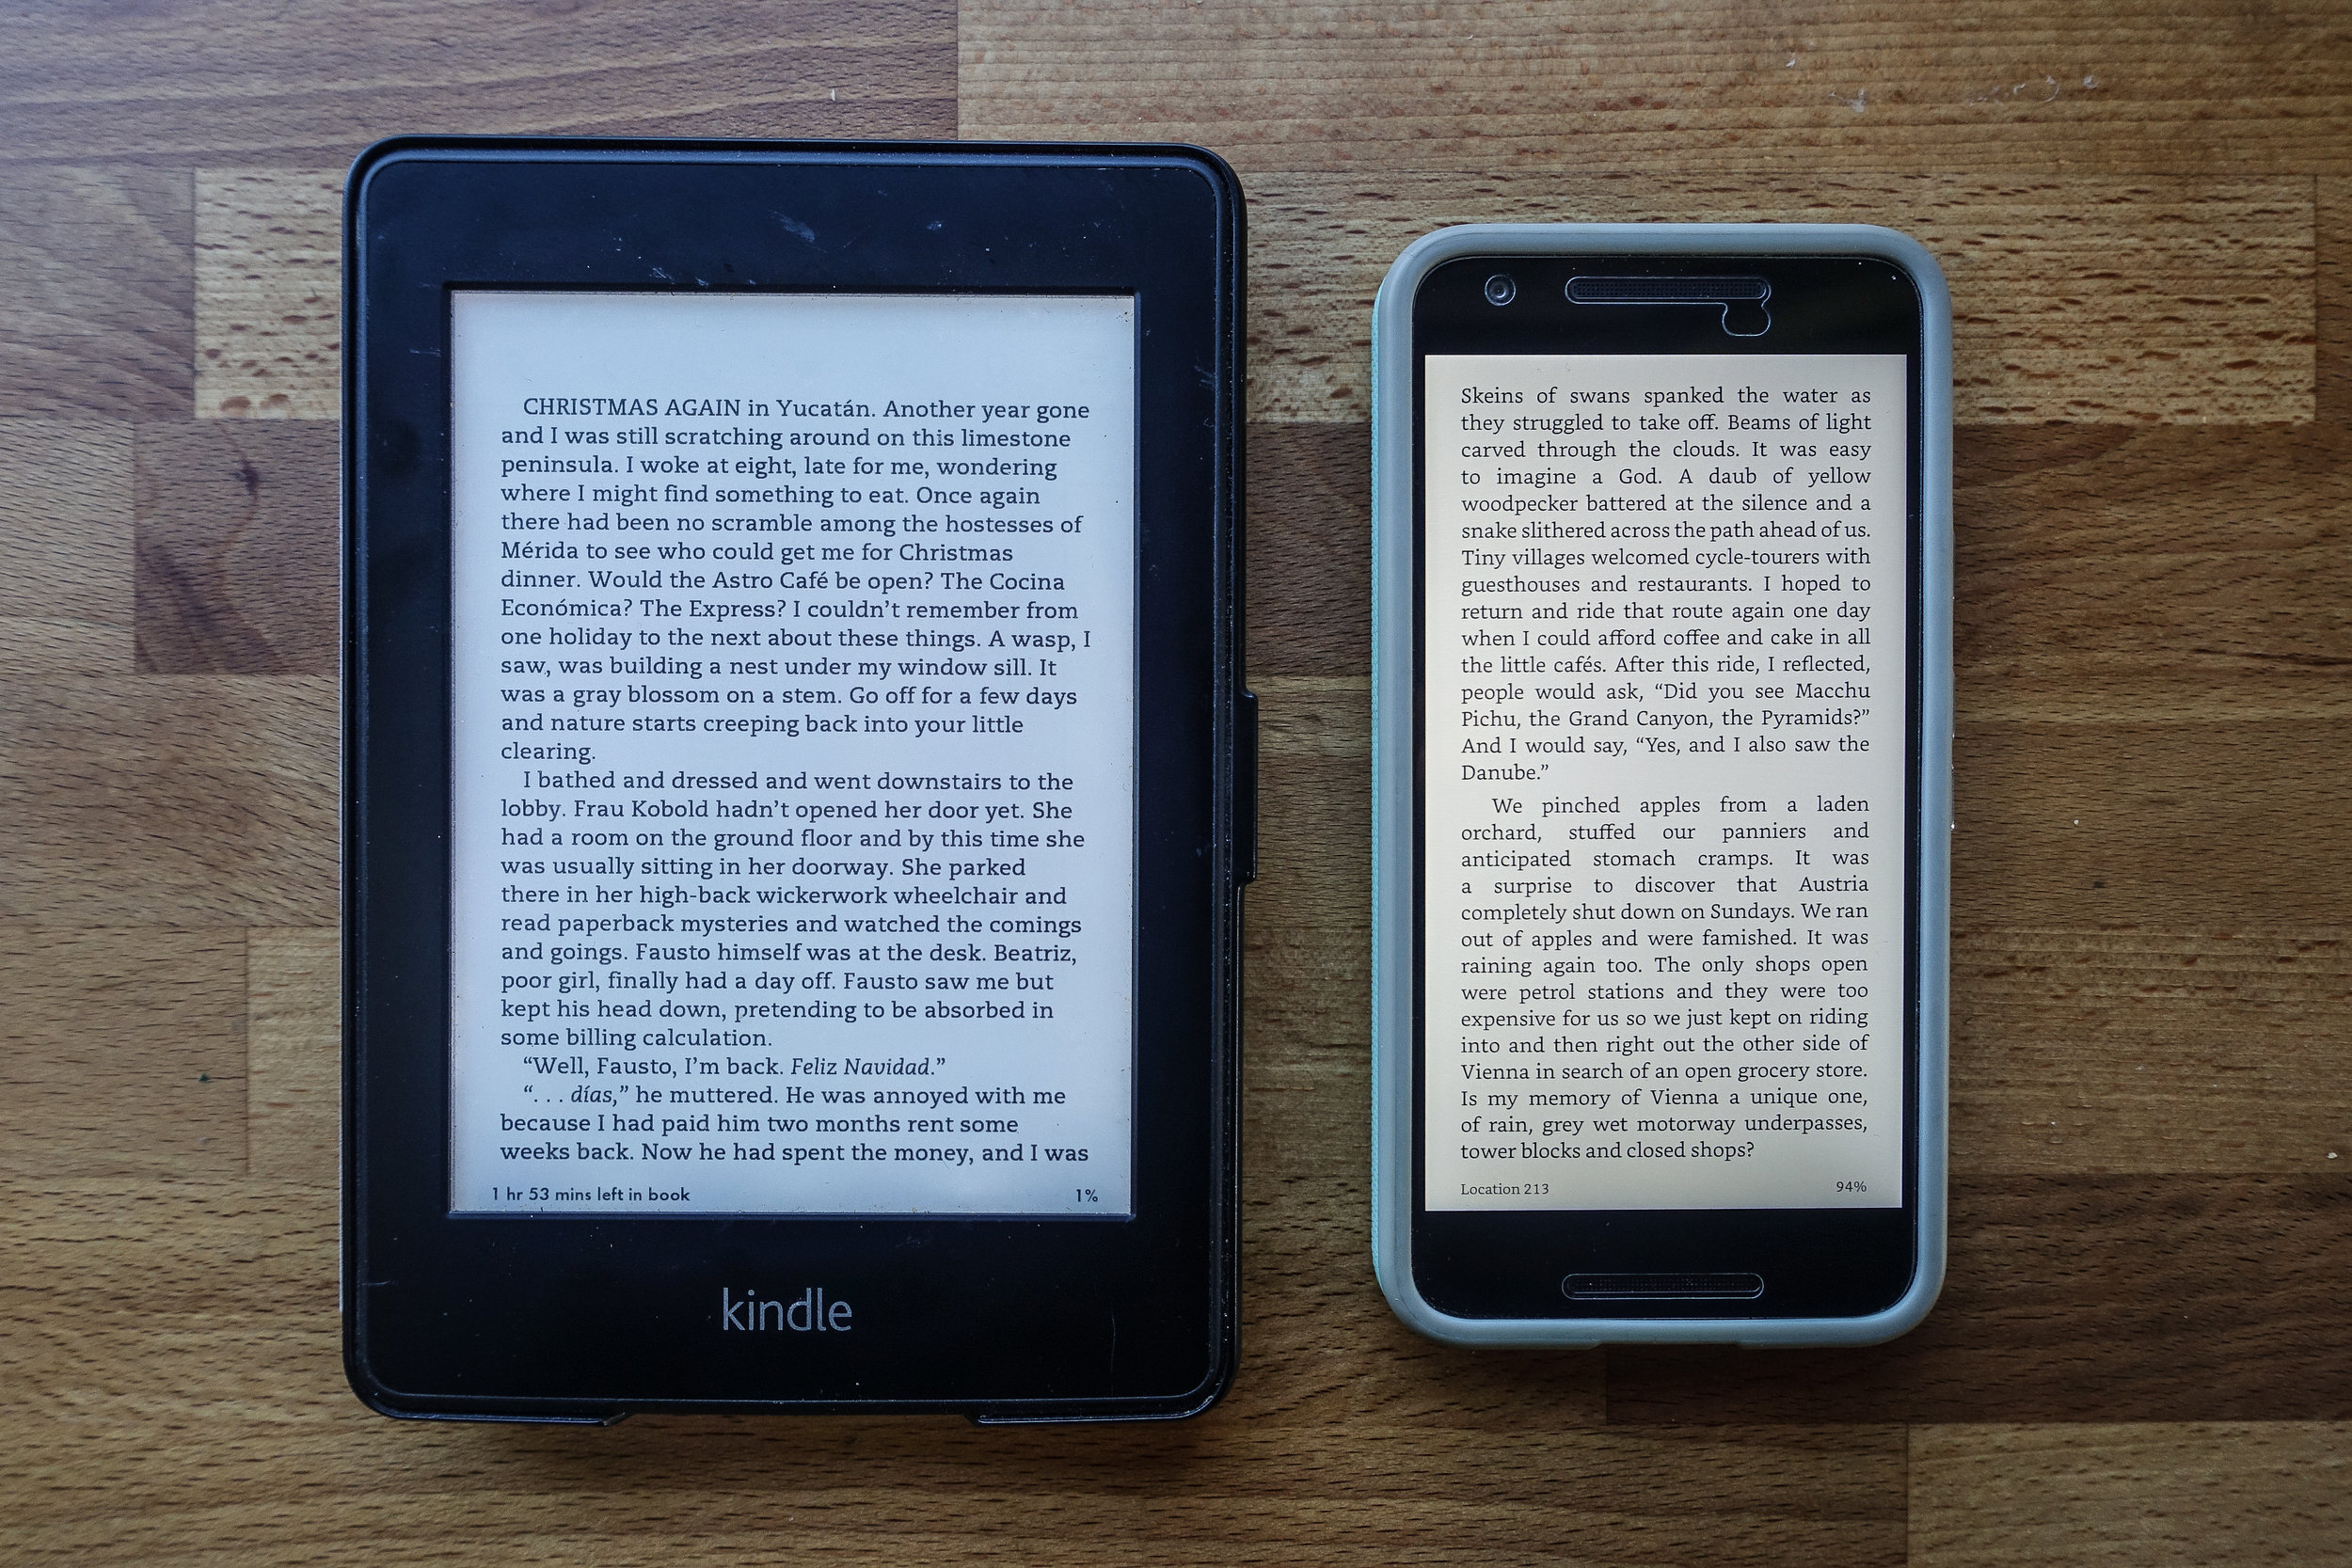 Kindle Paperwhite (left) and Kindle app on Nexus 5X (right).